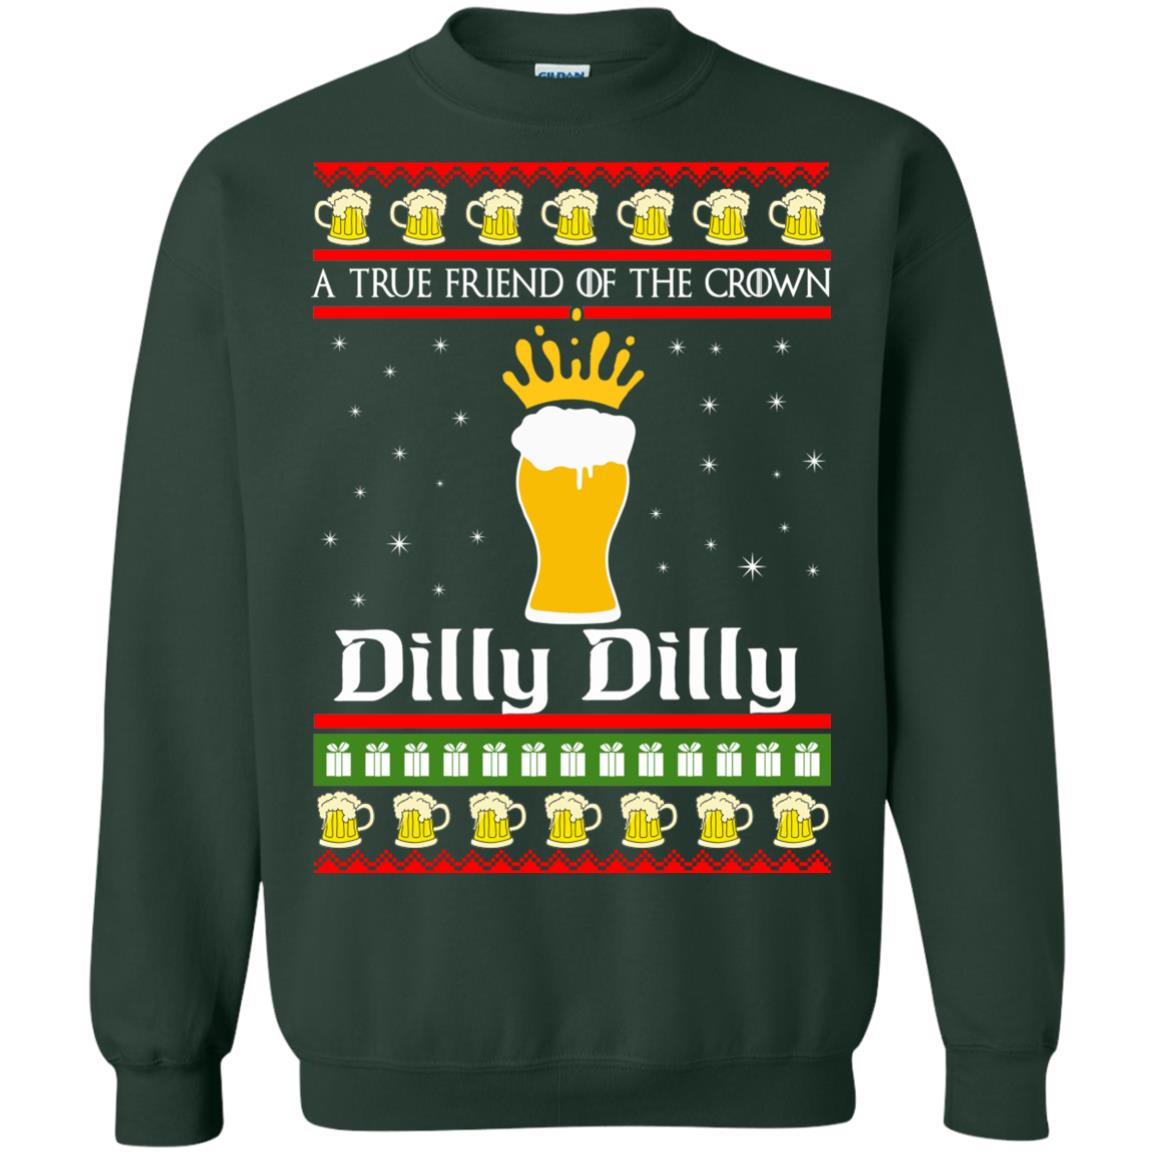 image 6327 - A True Friend Of The Crown Dilly Dilly Christmas Sweater, Hoodie